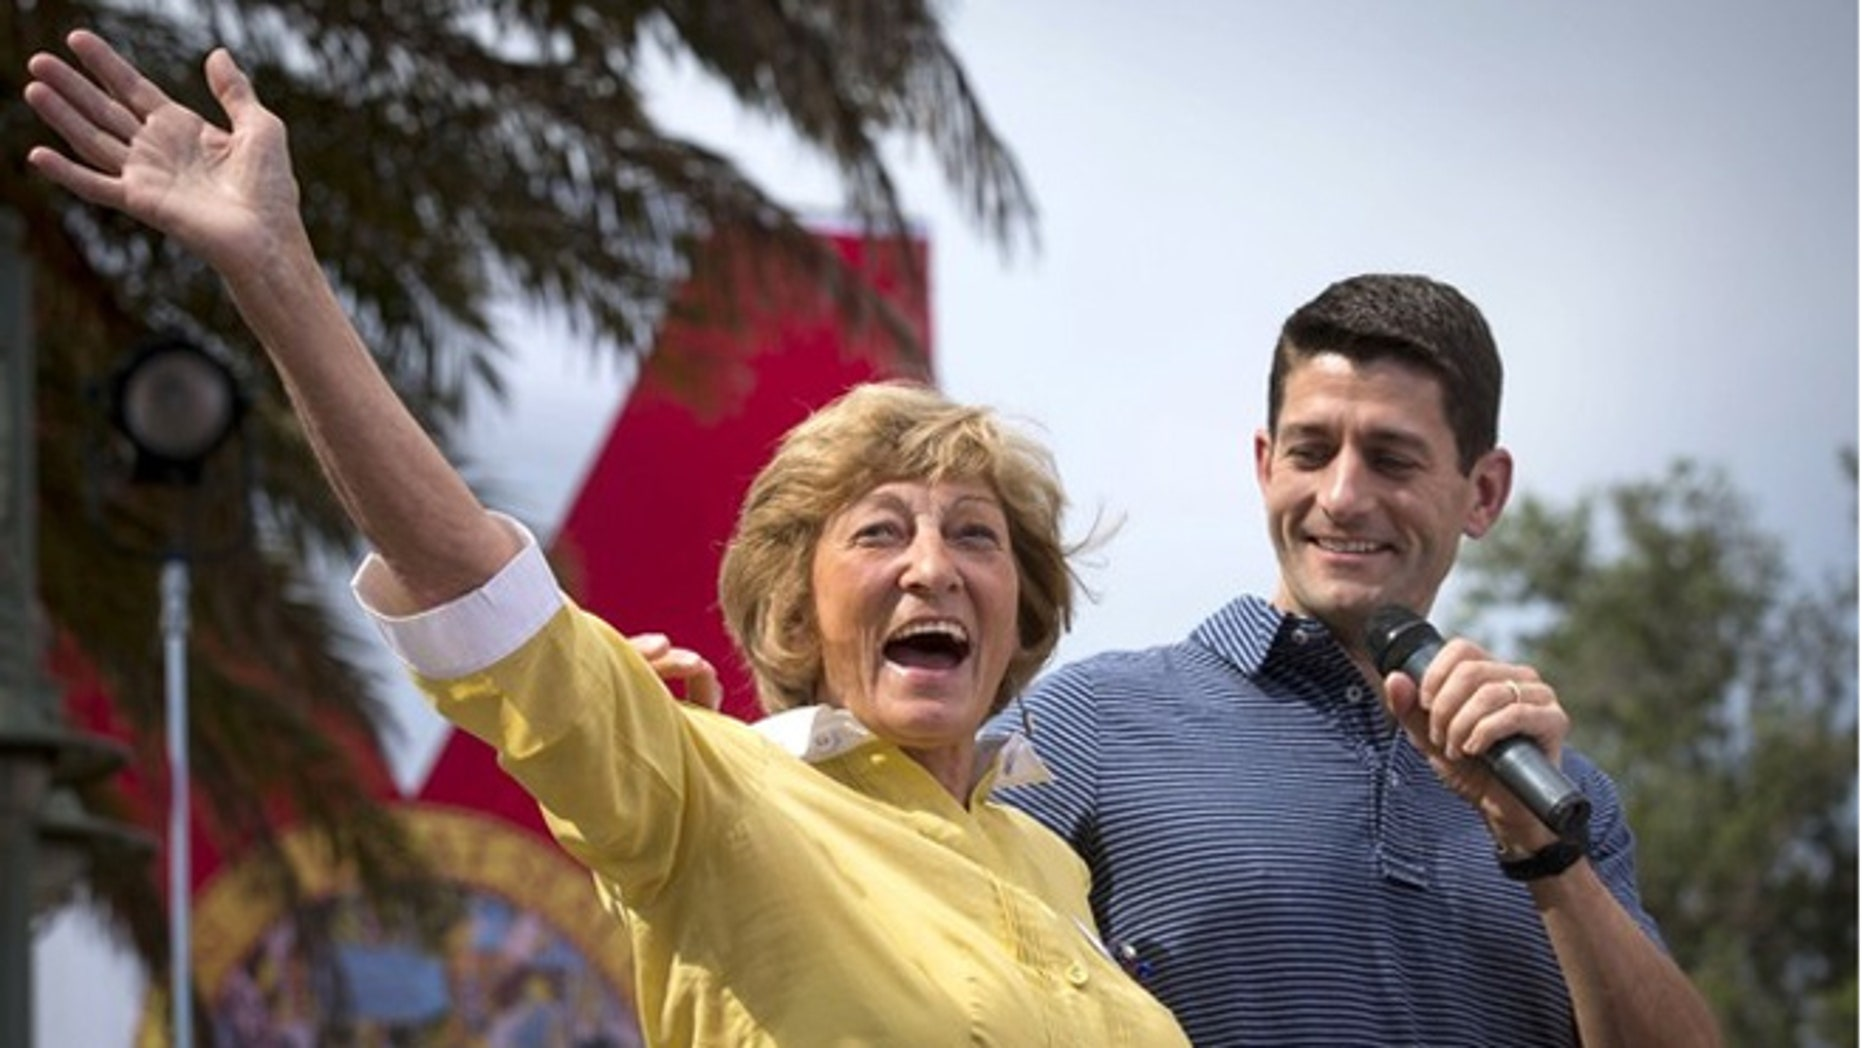 August 18, 2012: GOP vice presidential candidate Rep.Paul Ryan, Wis.,  introduces mother Betty Douglas at a campaign event at The Villages in Lady Lake, Fla.